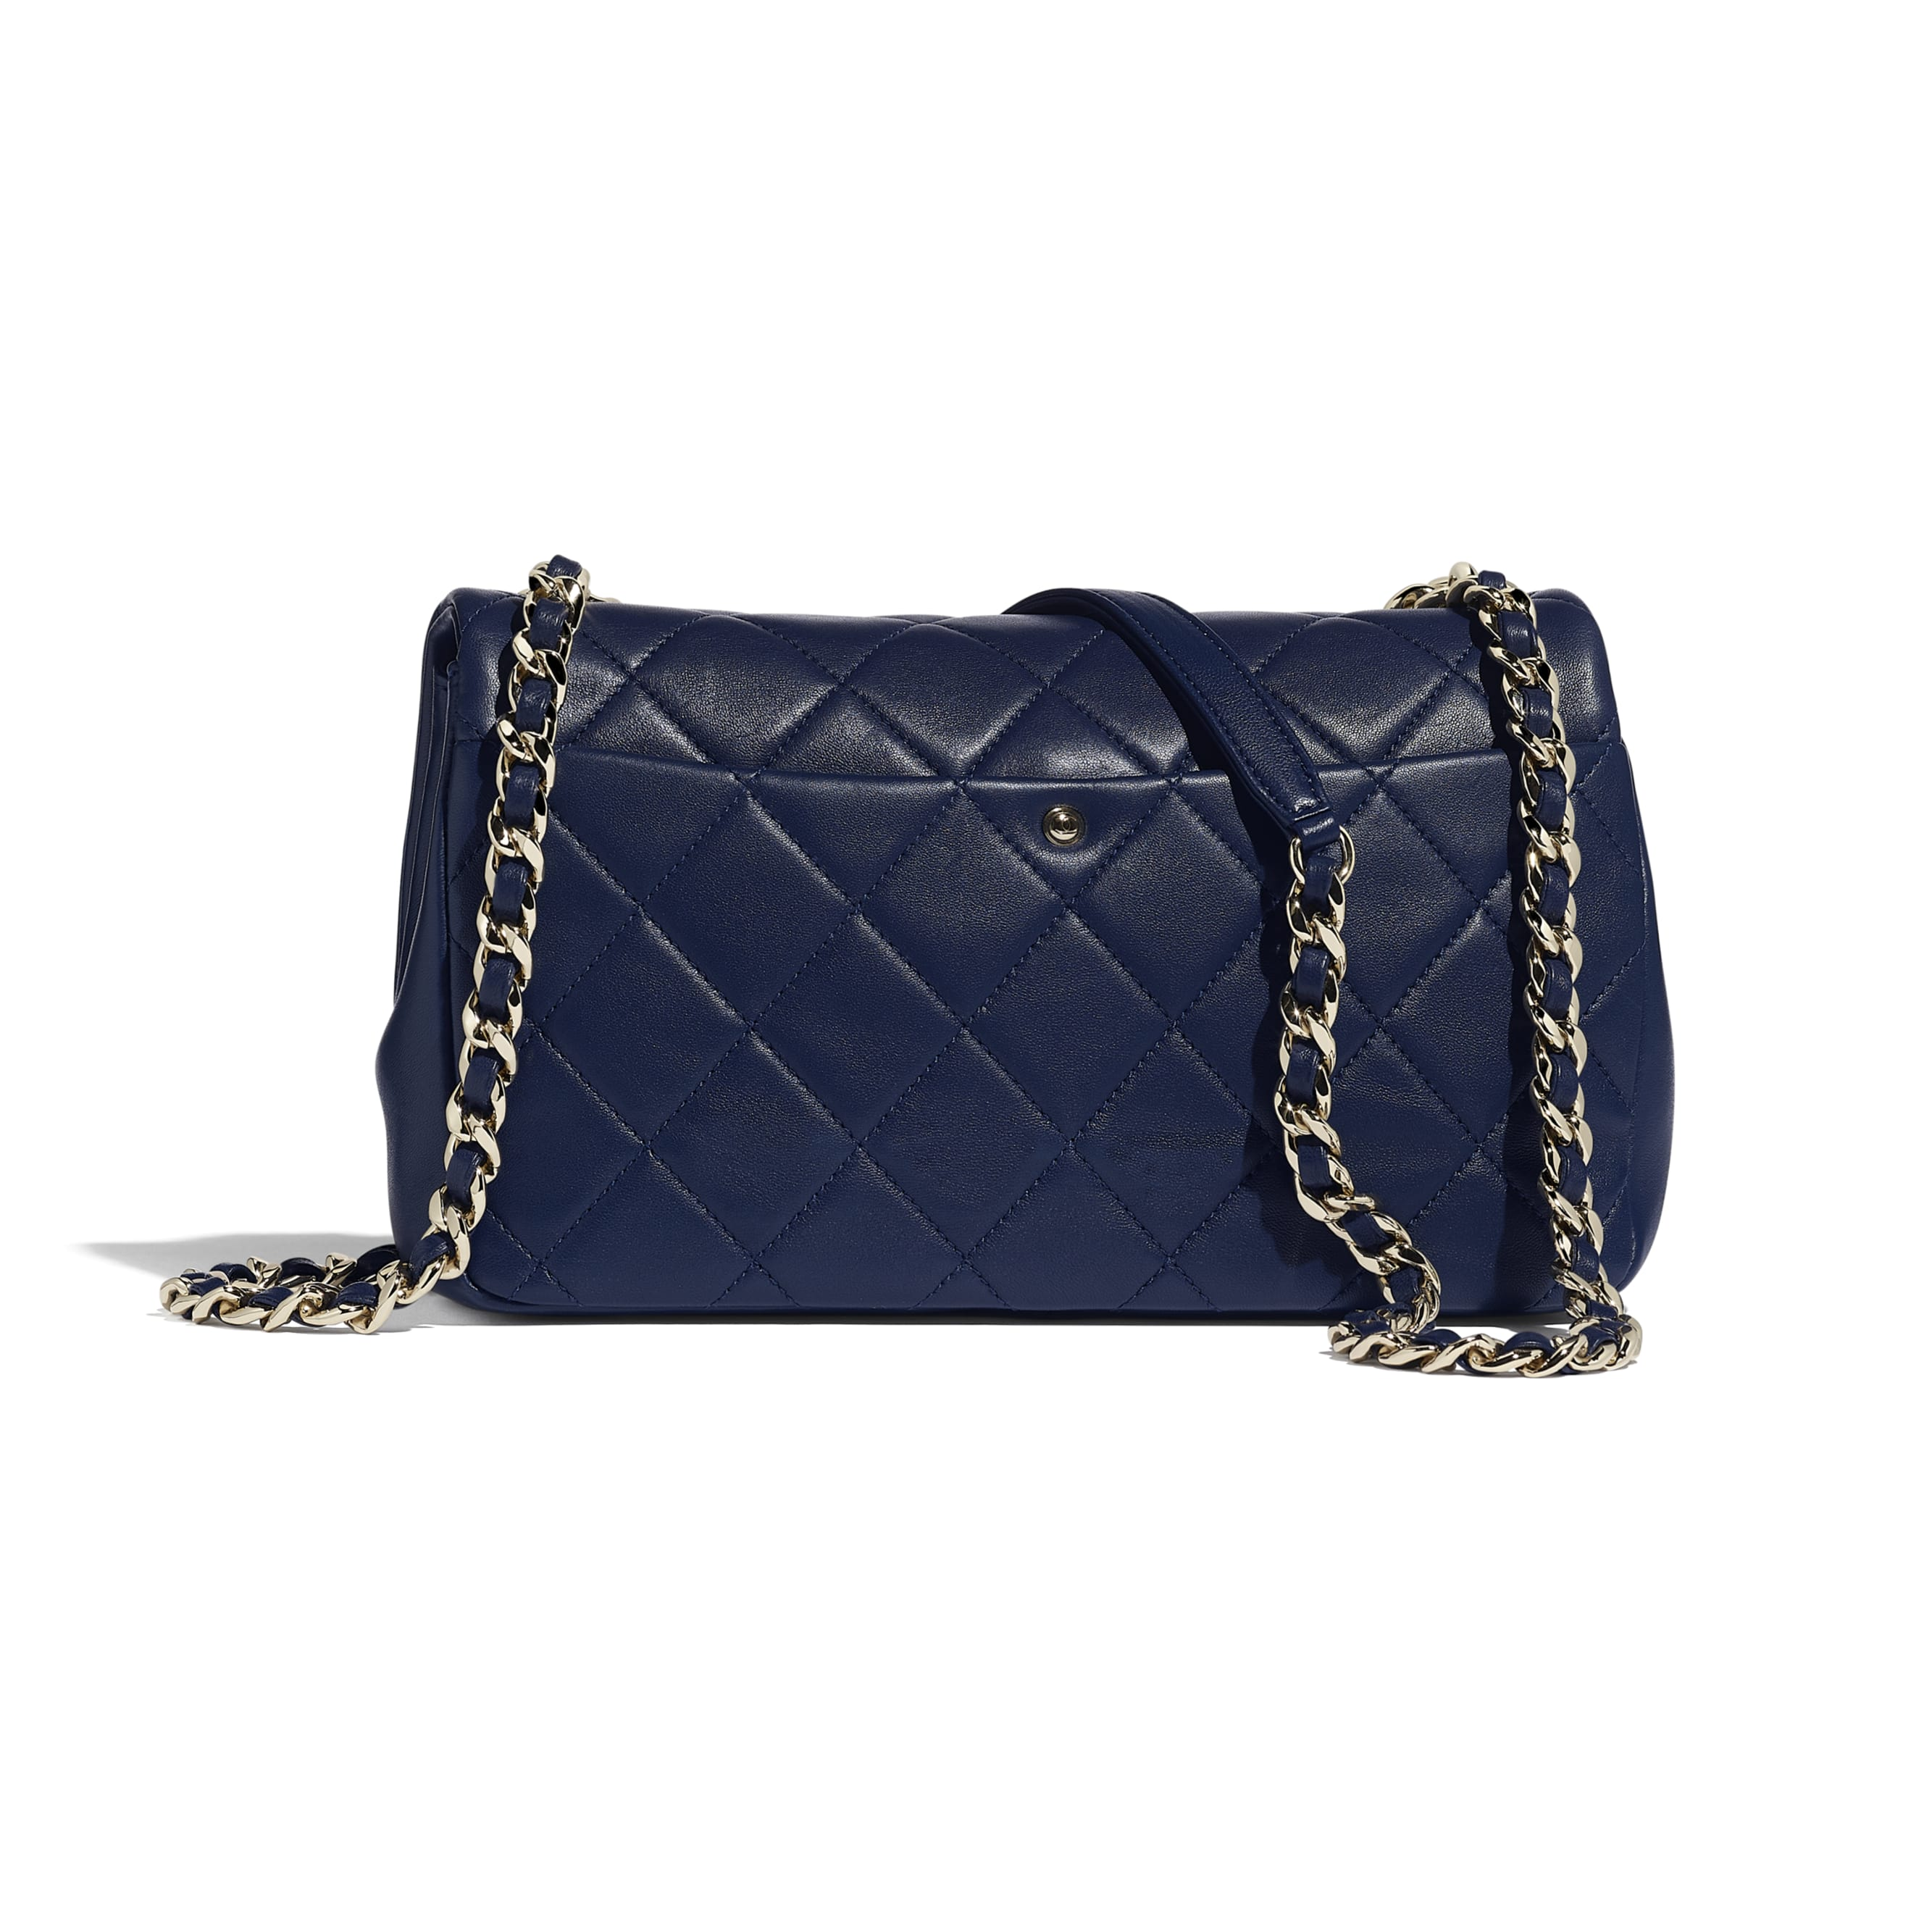 Large Flap Bag - Navy Blue - Lambskin, Resin & Gold-Tone Metal - Alternative view - see standard sized version